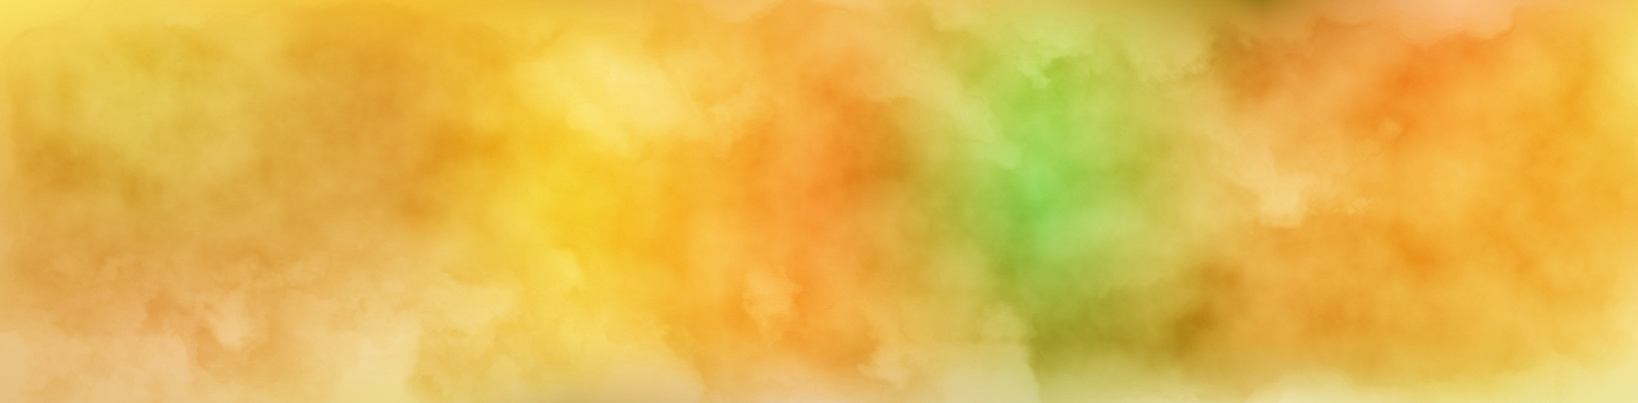 Banner Projetos.png